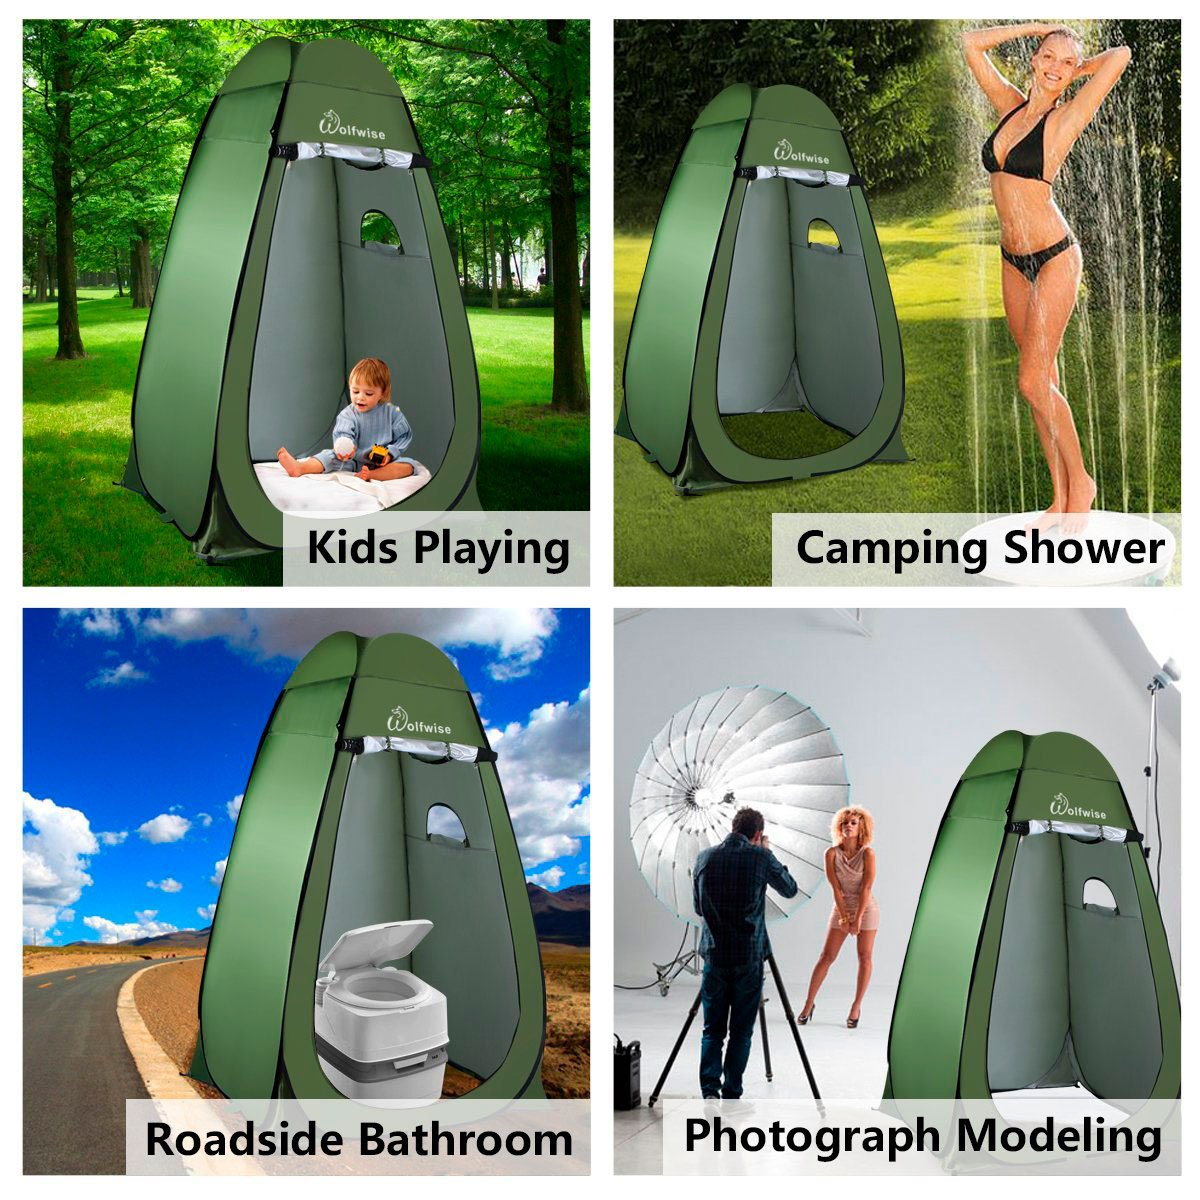 Amazoncom WolfWise Shower Tent Privacy Portable Camping Beach - Camping bathroom tent